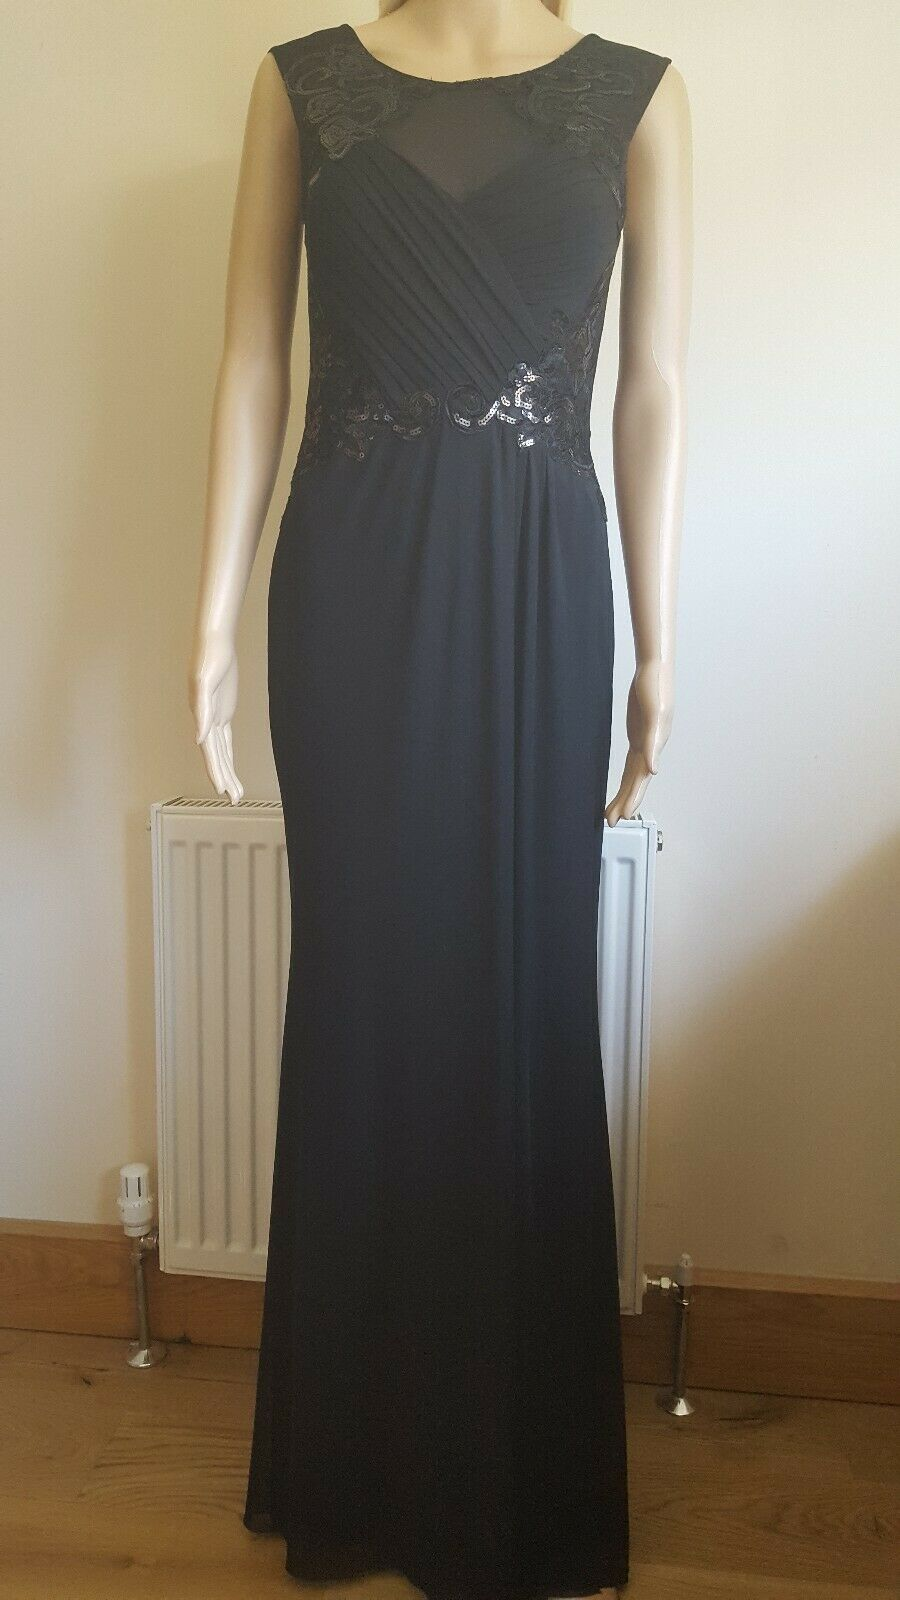 BNWT Lipsy Ruched Sequin Applique Embroidered Mesh Wrap Maxi Dress UK10 RRP